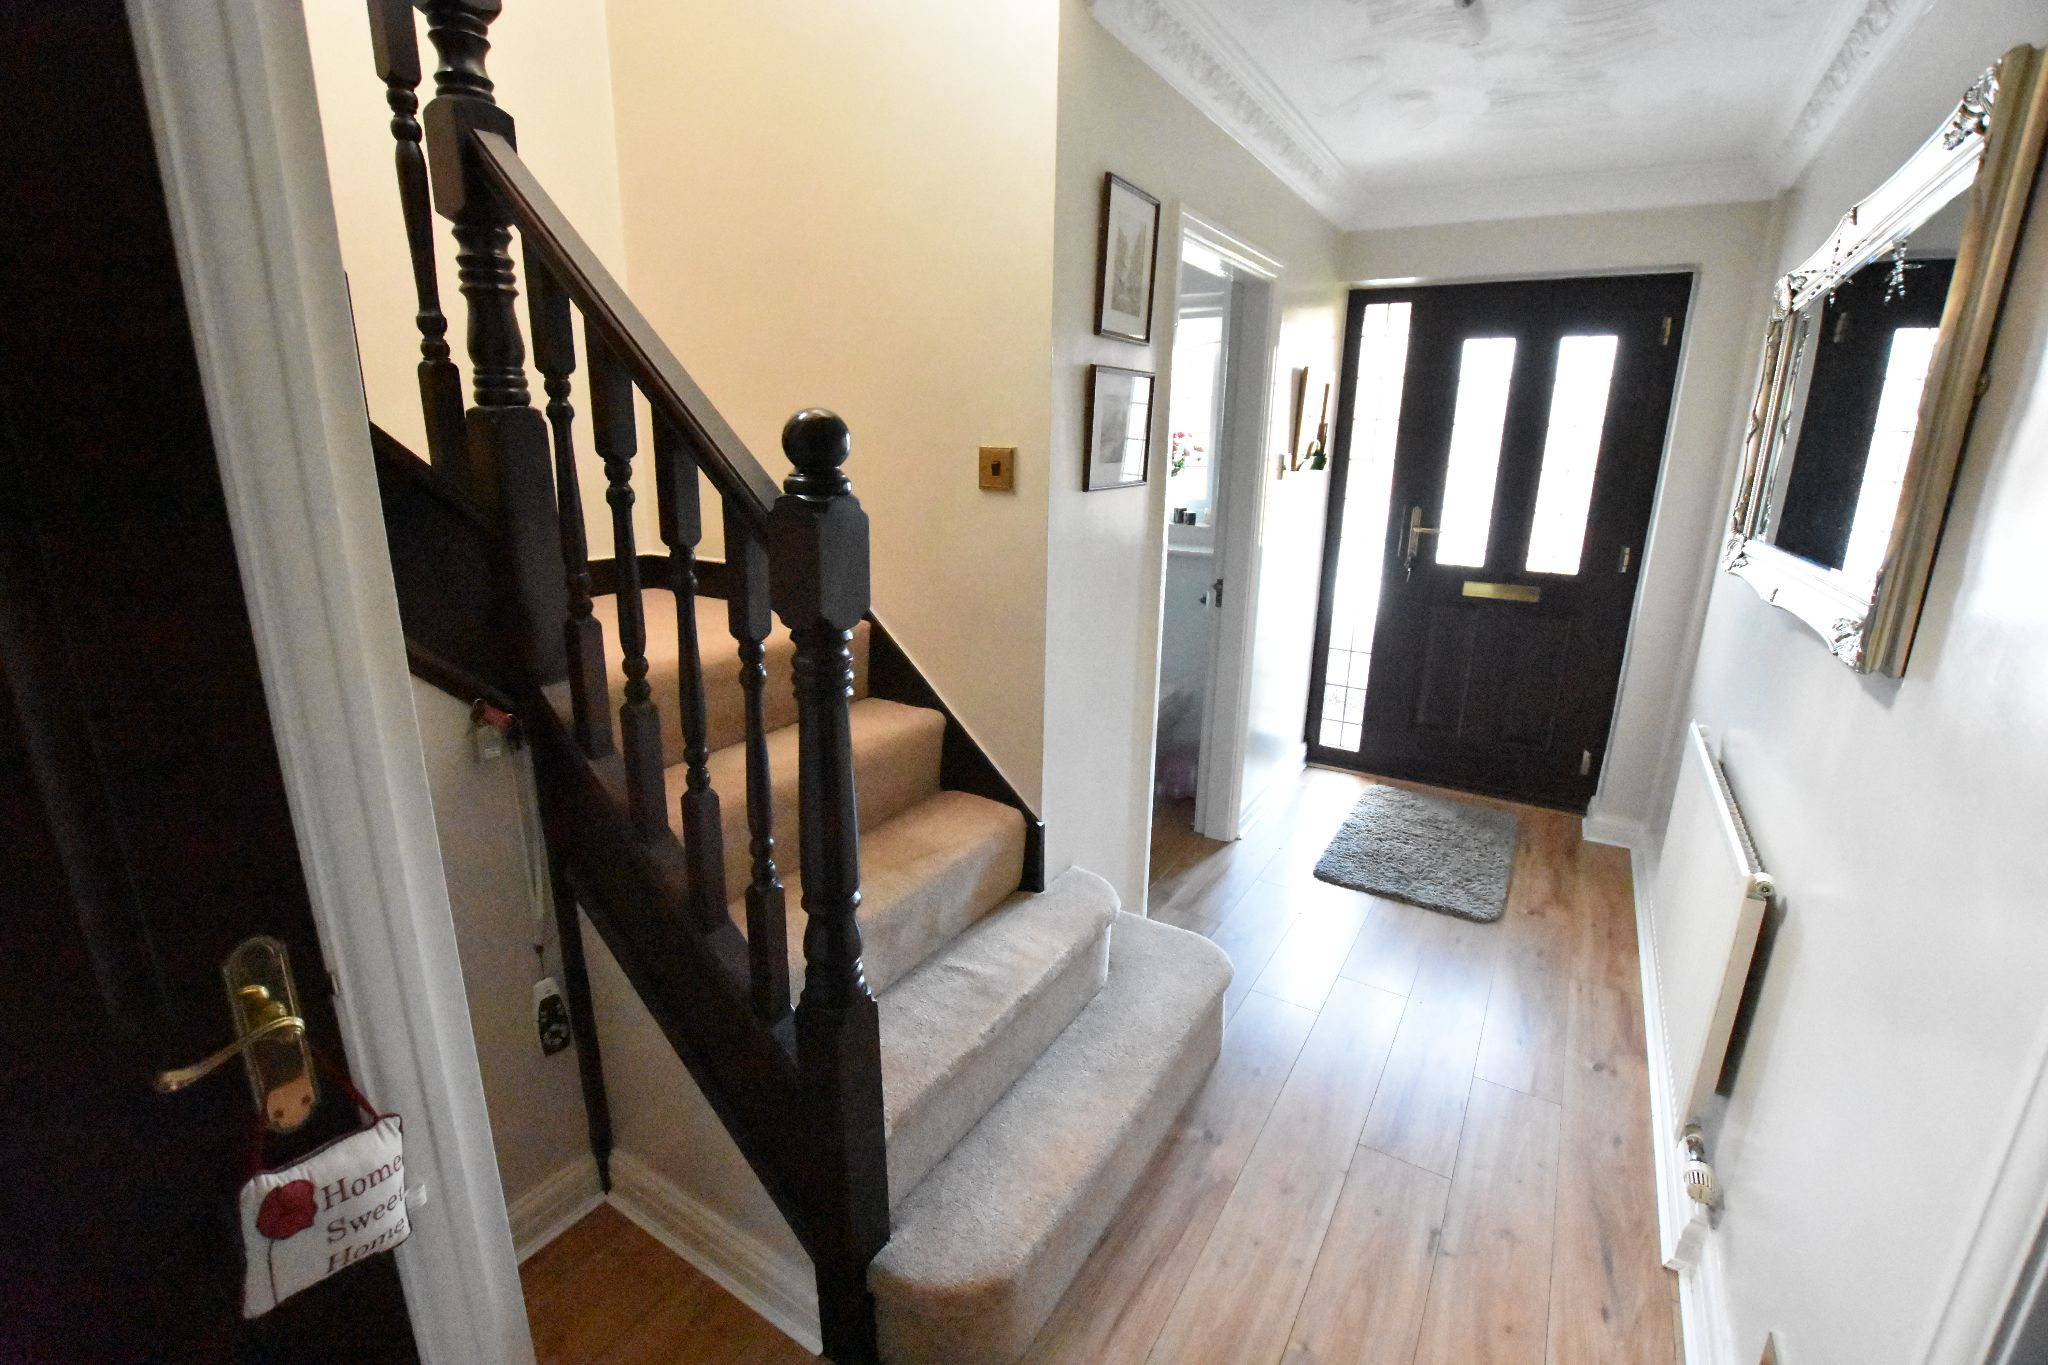 4 bedroom detached house Sold STC in Lytham St. Annes - Entrance hall